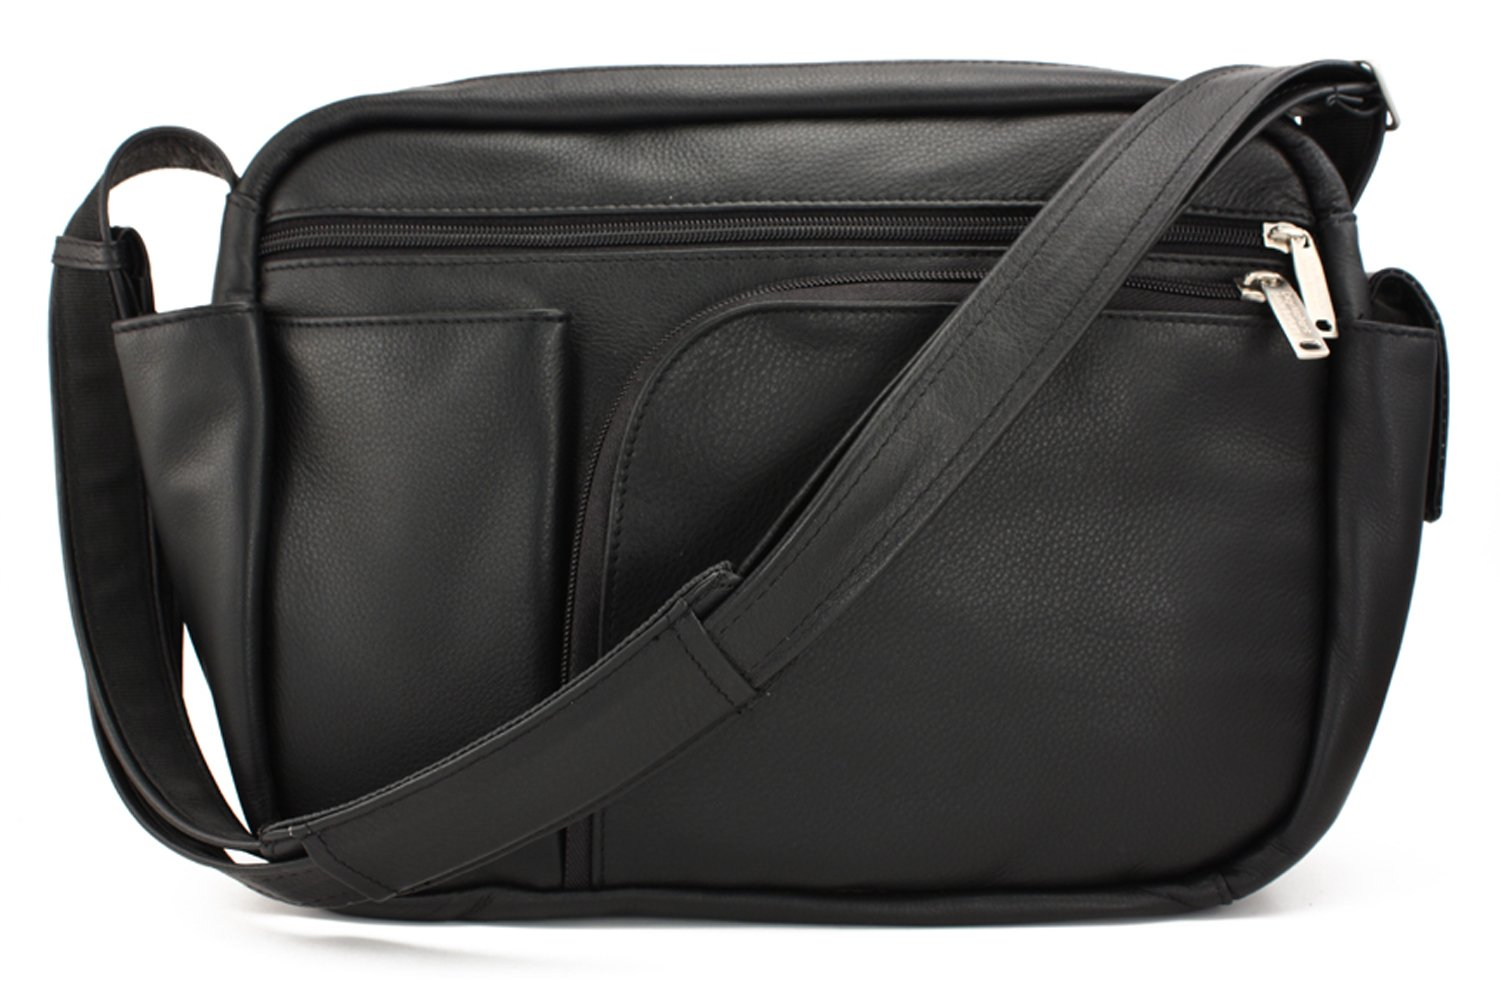 BeSafeBags by DayMakers 10 Pocket with Organizer, Large Anti-Theft Travel Security Handbag, Black Leather